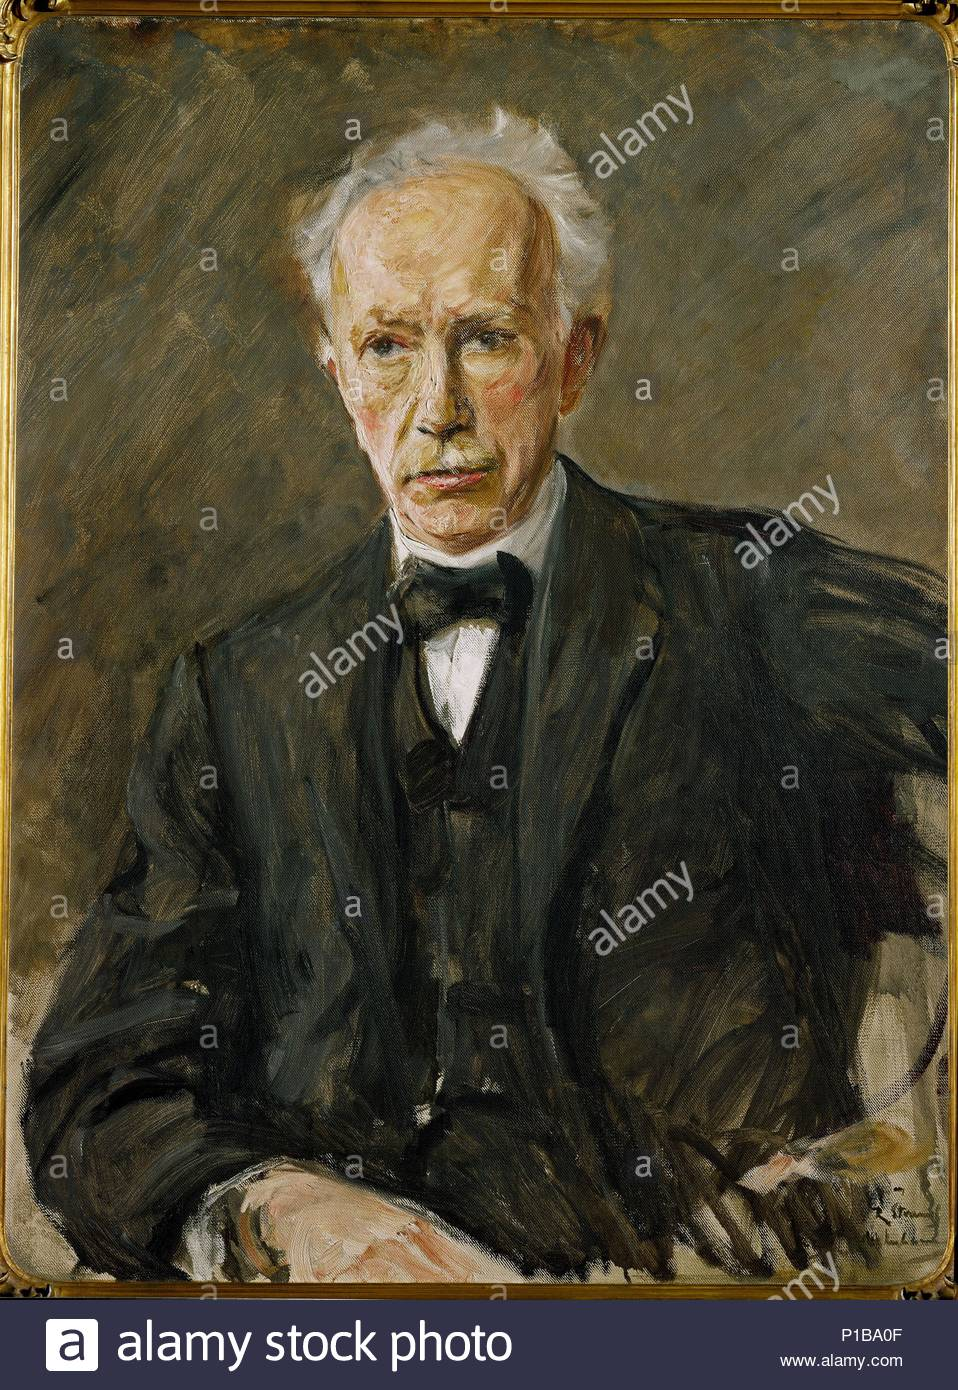 Portrait of composer Richard Strauss (1864-1949) Canvas, 90 x 65 cm Property of the Strauss-family. Author: Max Liebermann (1847-1935). Location: Private Collection,, Germany. - Stock Image